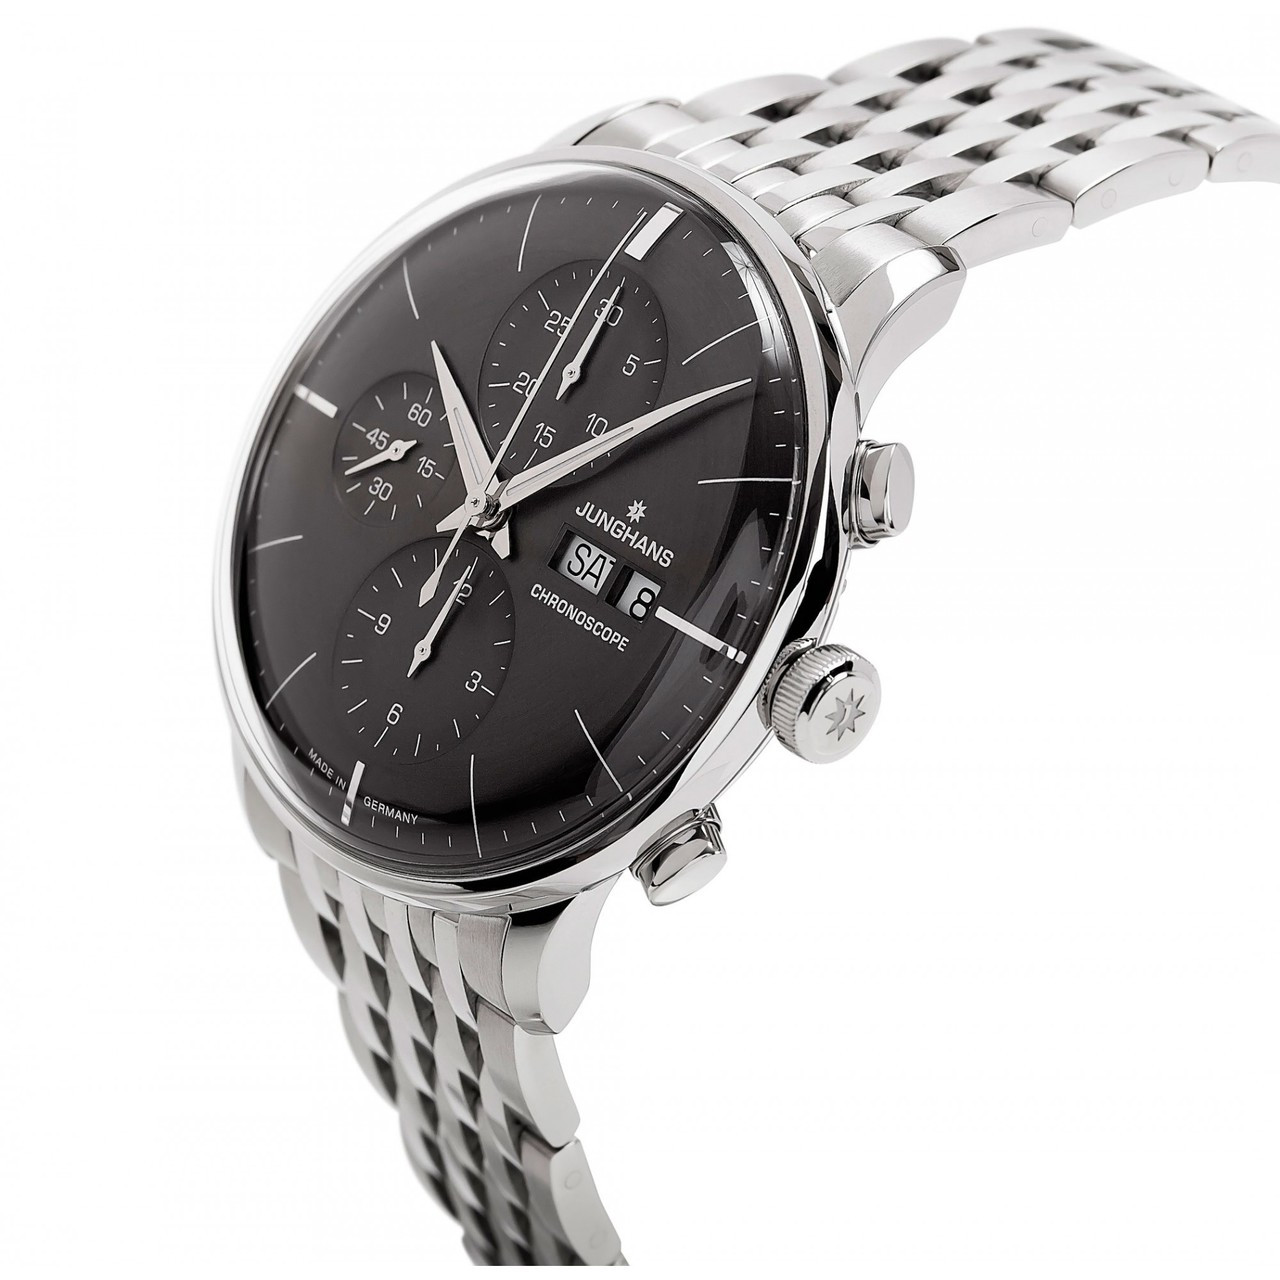 For sale Junghans Watch Meister Chronoscope Sunray Dark Grey Dial Day Date Steel Bracelet 027/4324.45 New, online www.Legendoftime.com and in store Legend of Time - Chicago Watch Center.